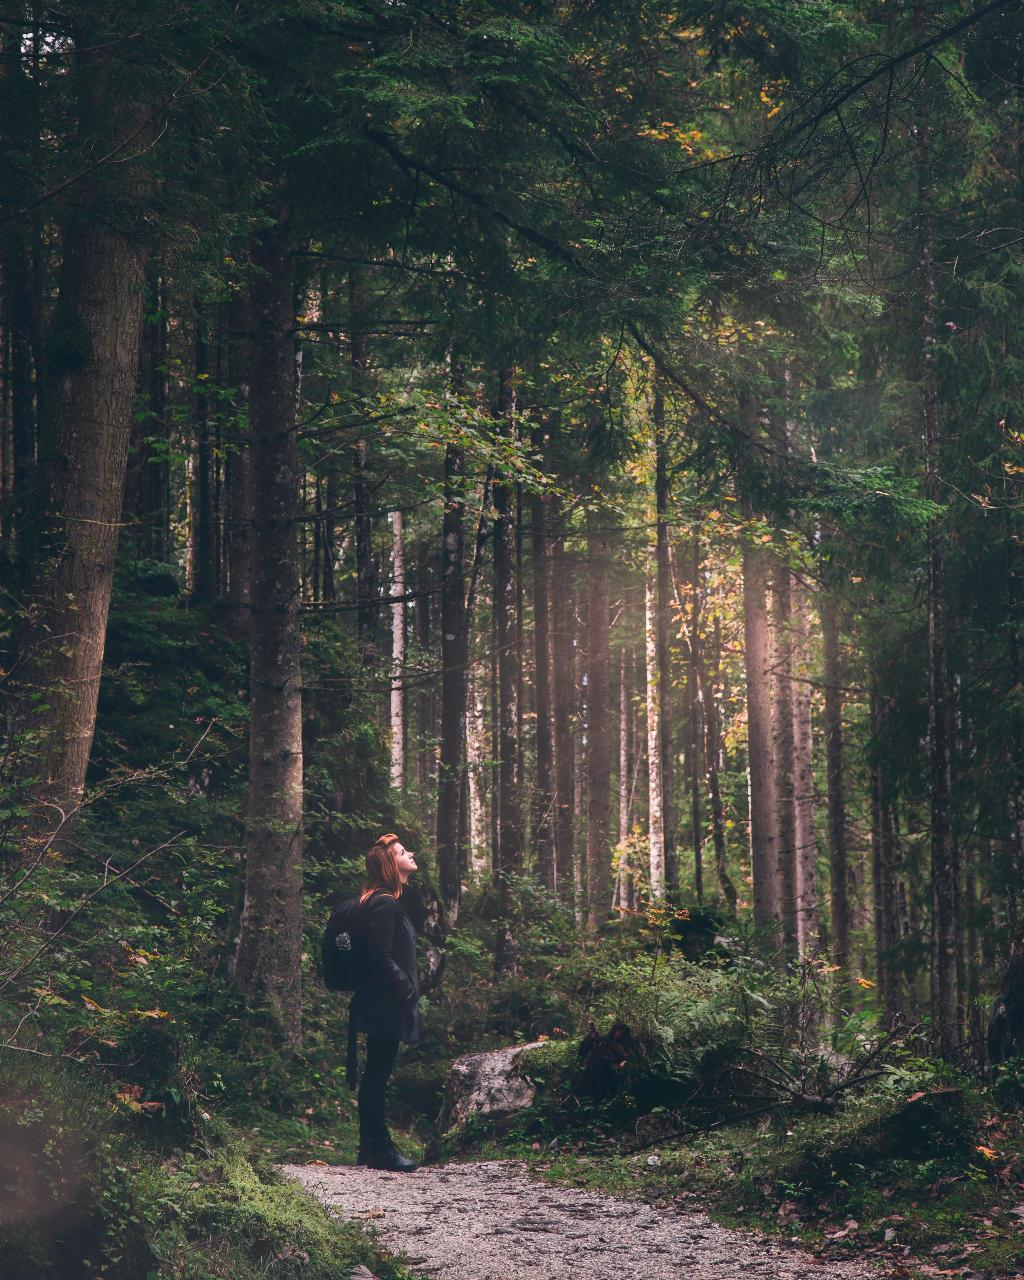 Forest Bathing + Rock Climb in Hocking Hills, OH